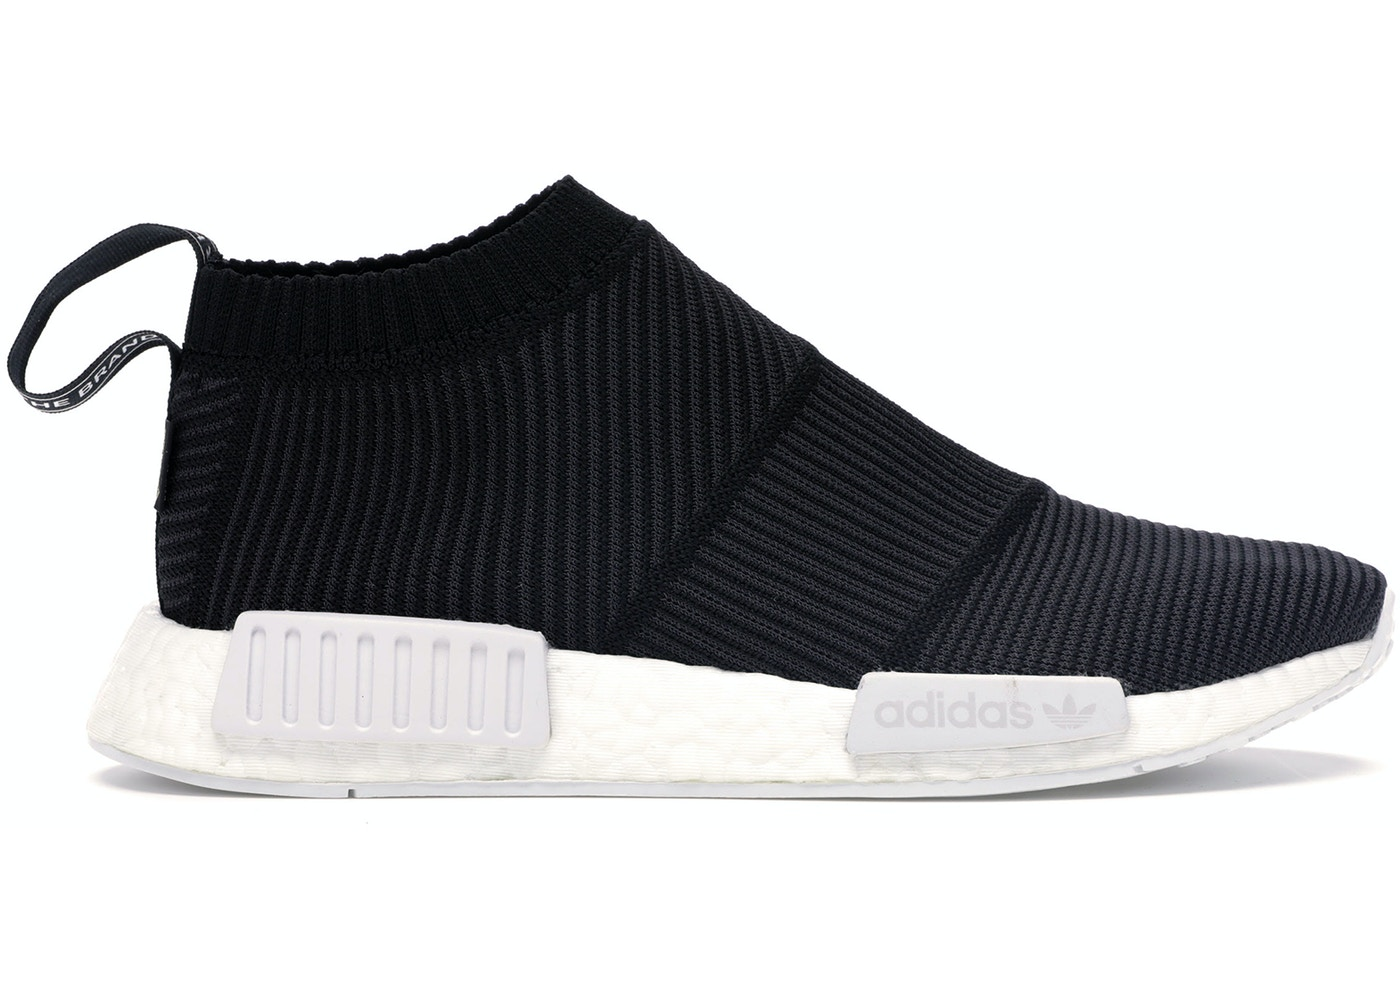 9dbfff20c Sell. or Ask. Size  7.5. View All Bids. adidas NMD CS1 Gore-tex Black